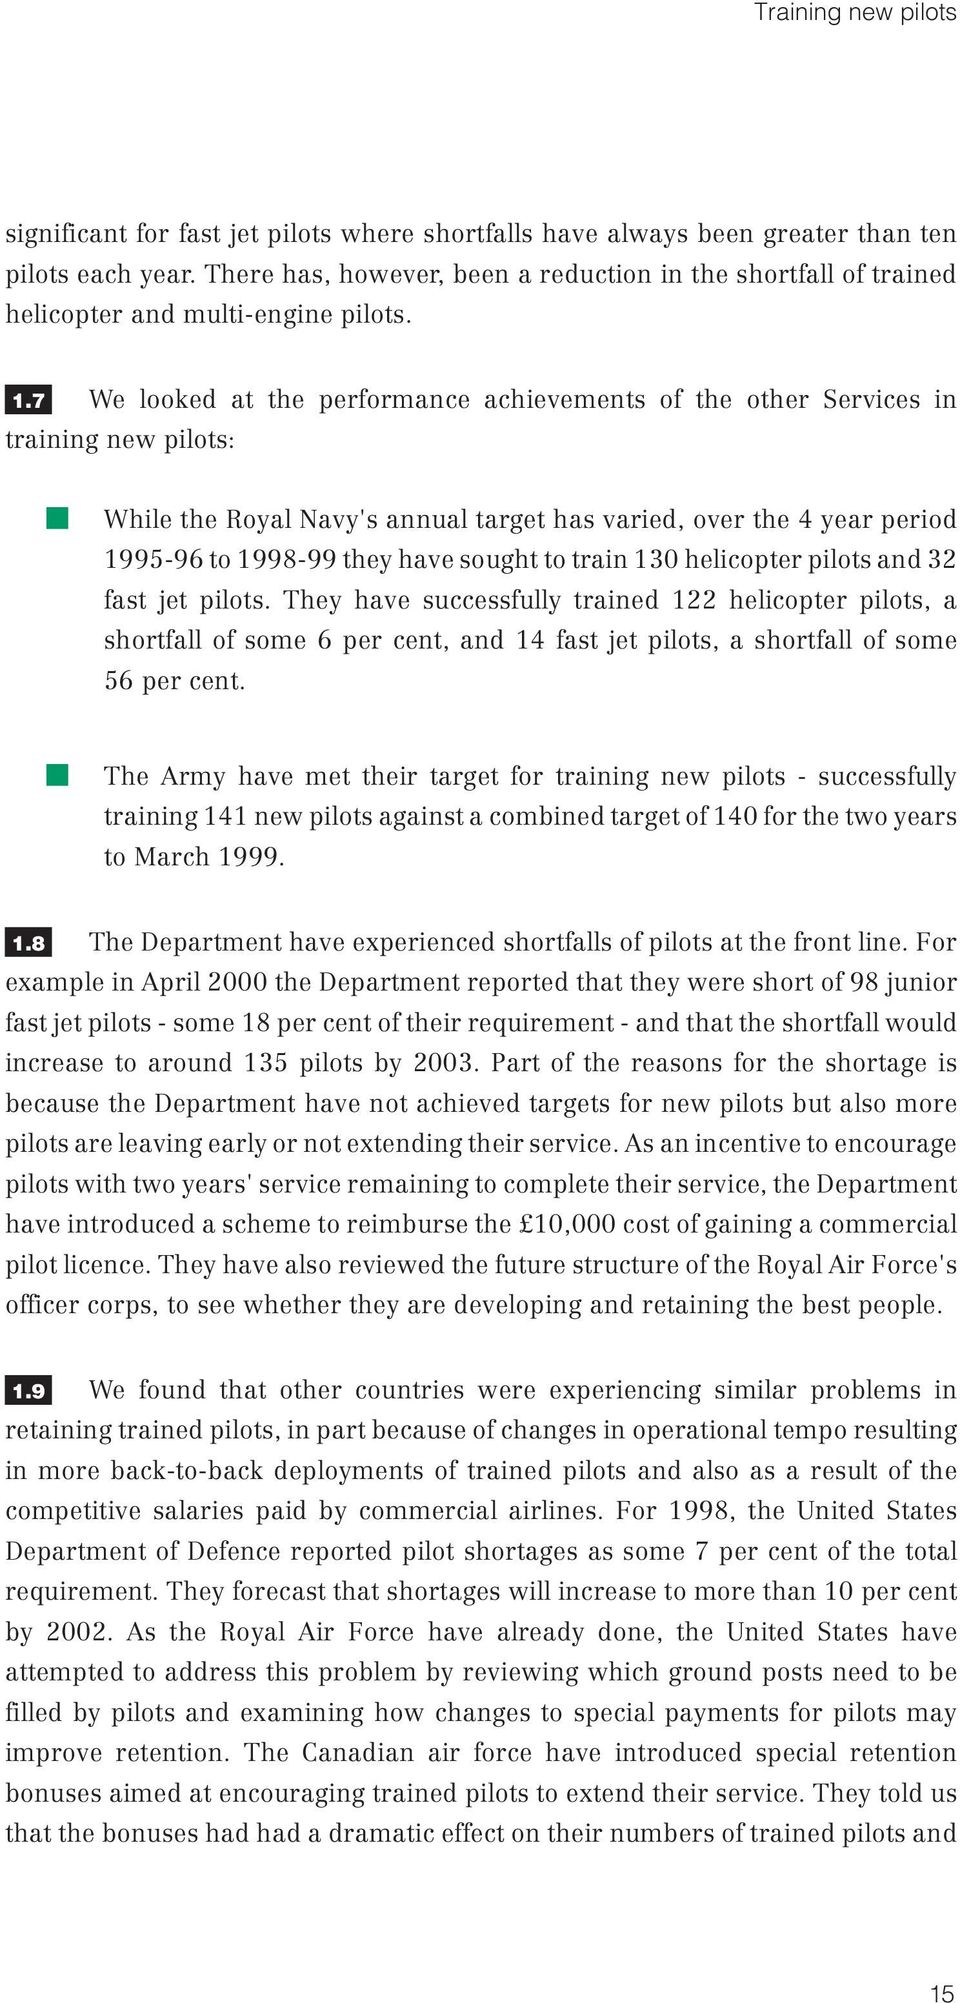 7 We looked at the performance achievements of the other Services in training new pilots: While the Royal Navy's annual target has varied, over the 4 year period 1995-96 to 1998-99 they have sought